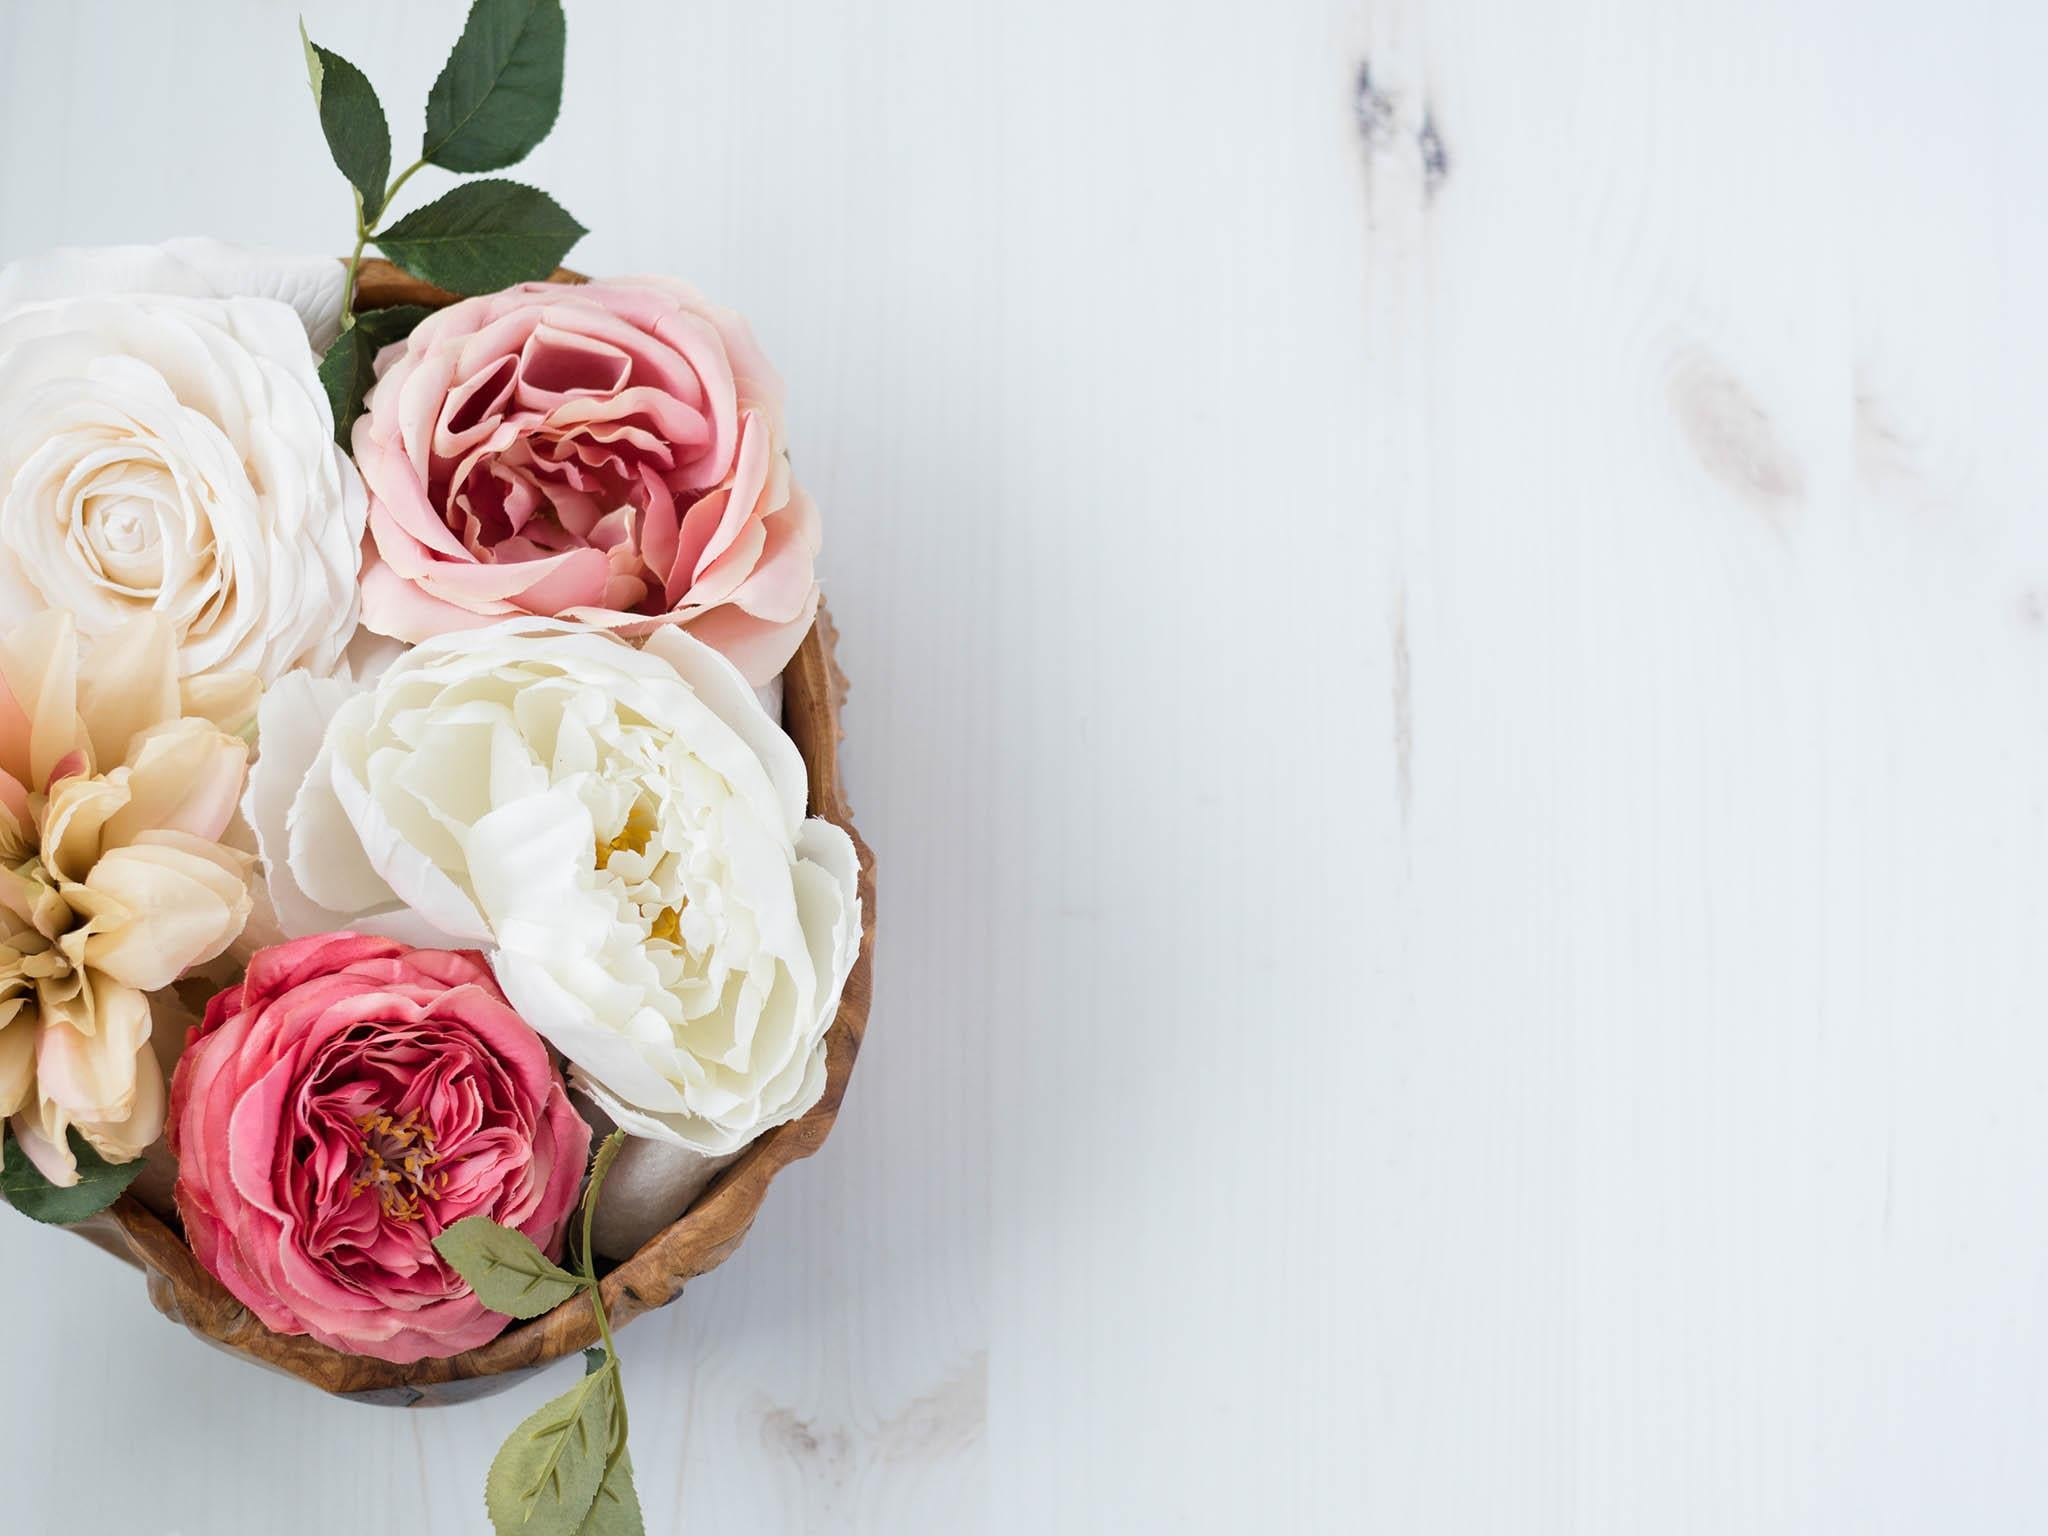 dac72651989 13 best Valentine's Day flowers | The Independent